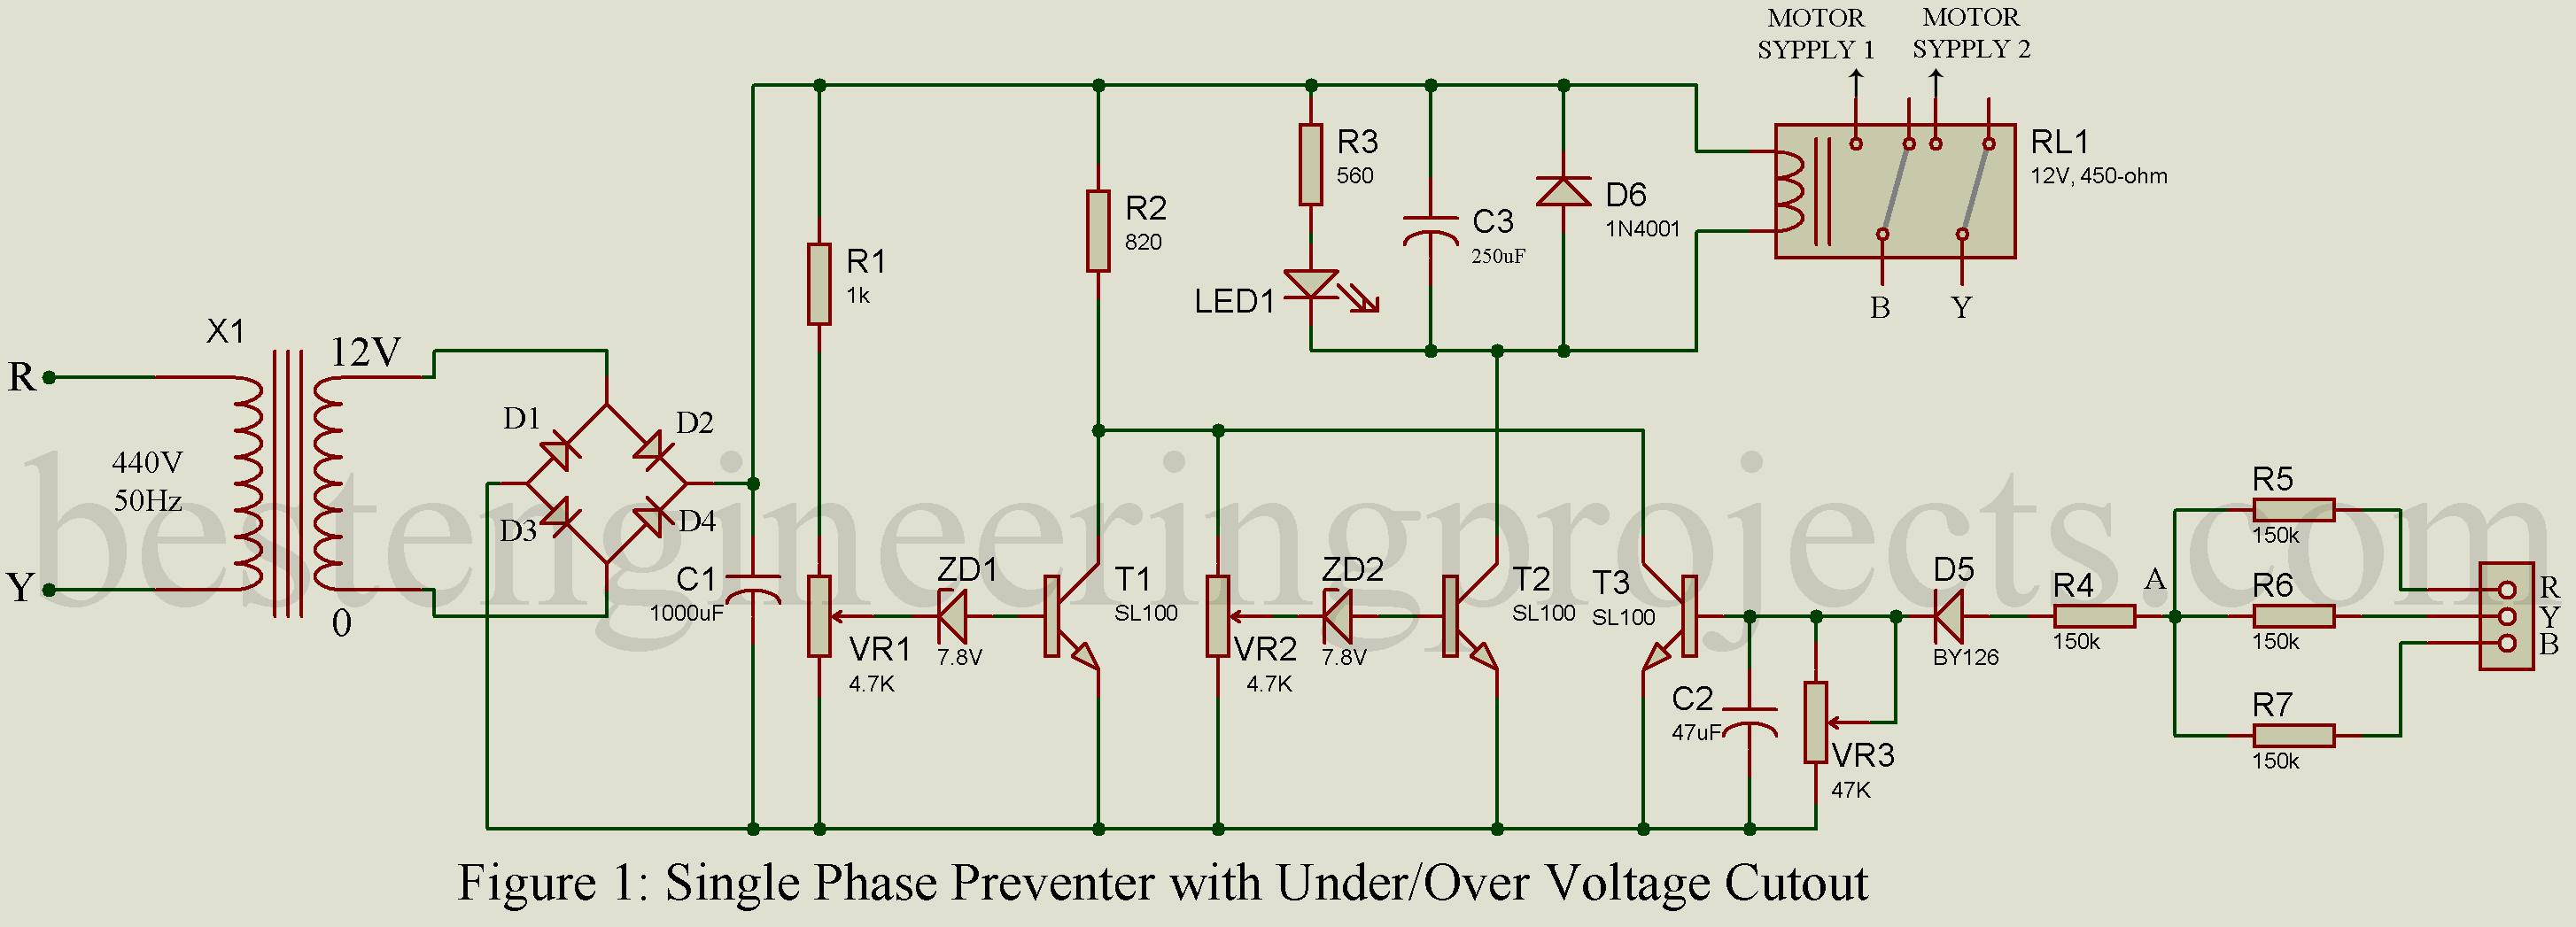 Single Phase Preventer with Under/Over Voltage Cutout